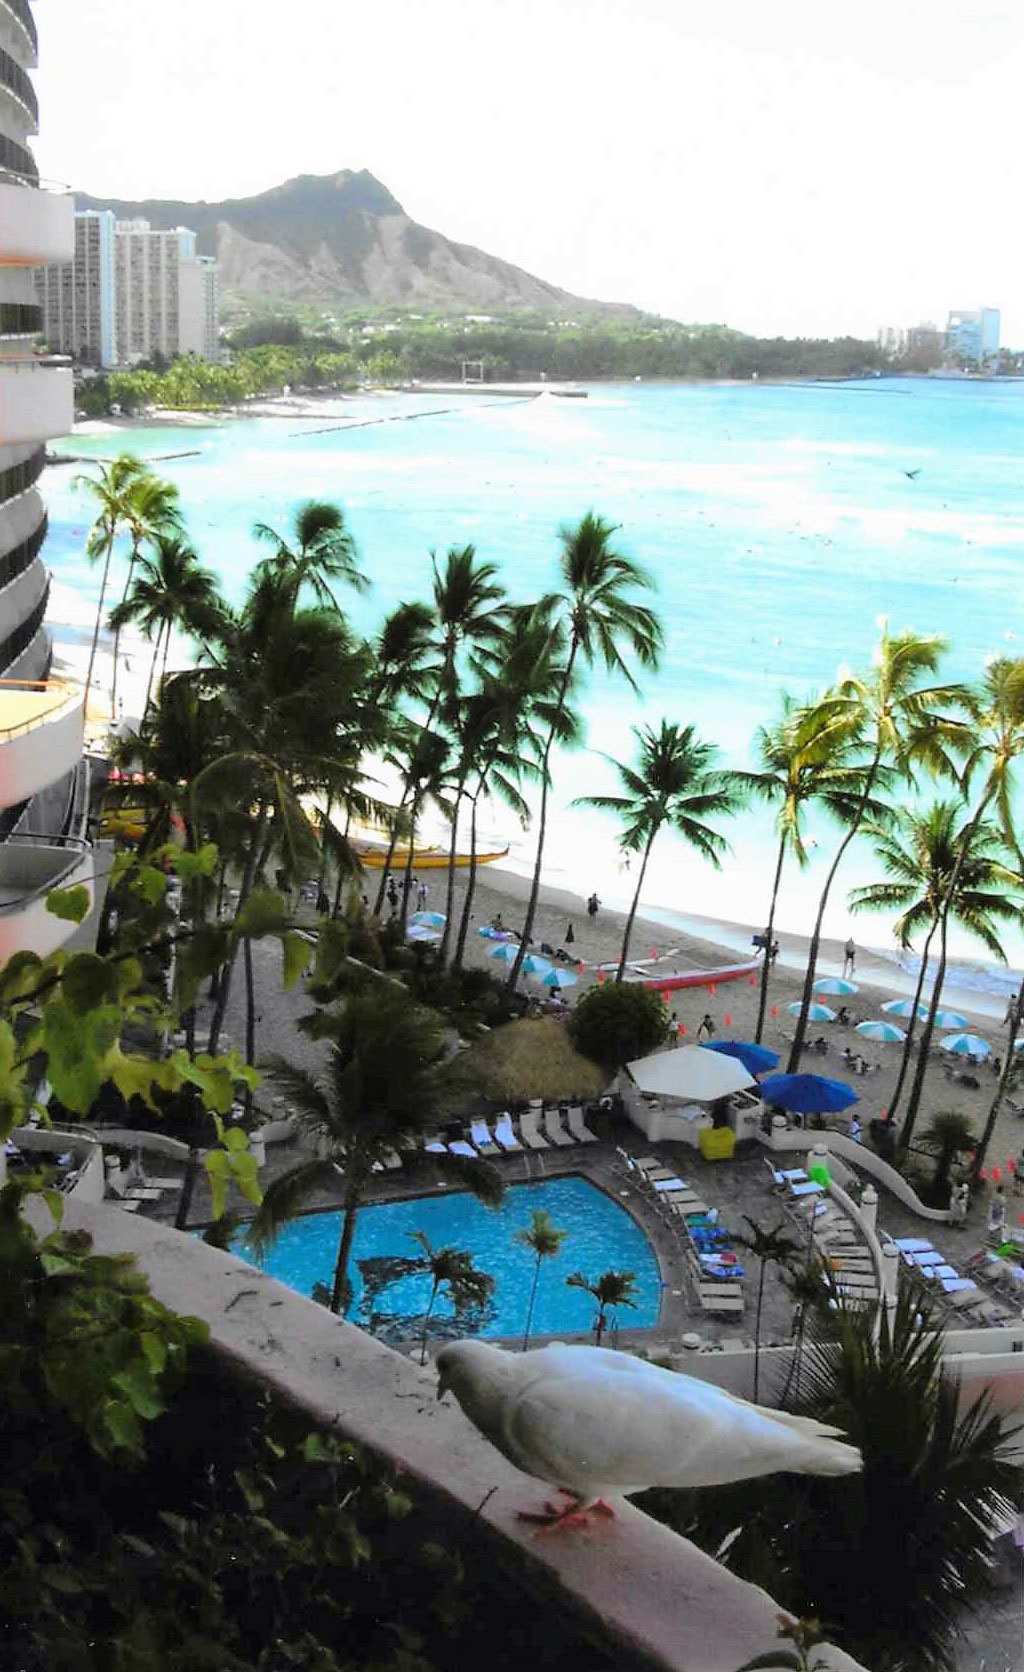 View of ocean, beach, palm trees in Waikiki from a high balcony. In foreground, a pigeon